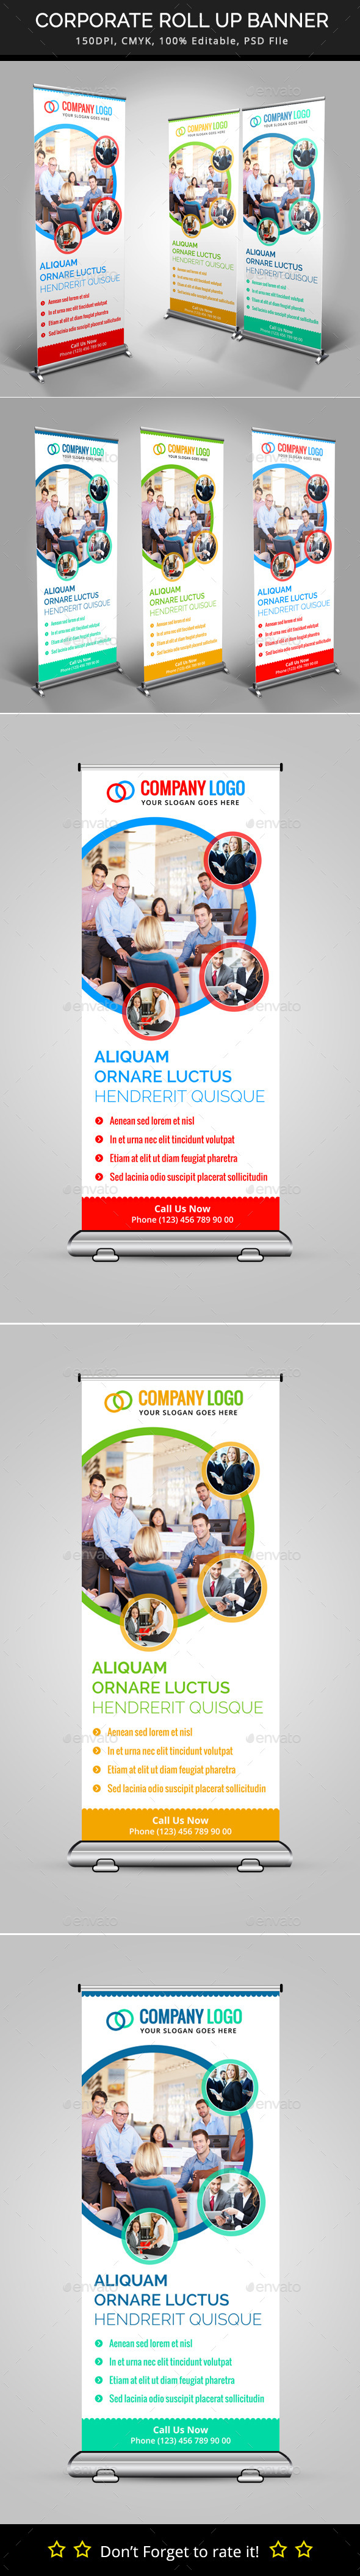 GraphicRiver Corporate Roll Up Banner 10010372